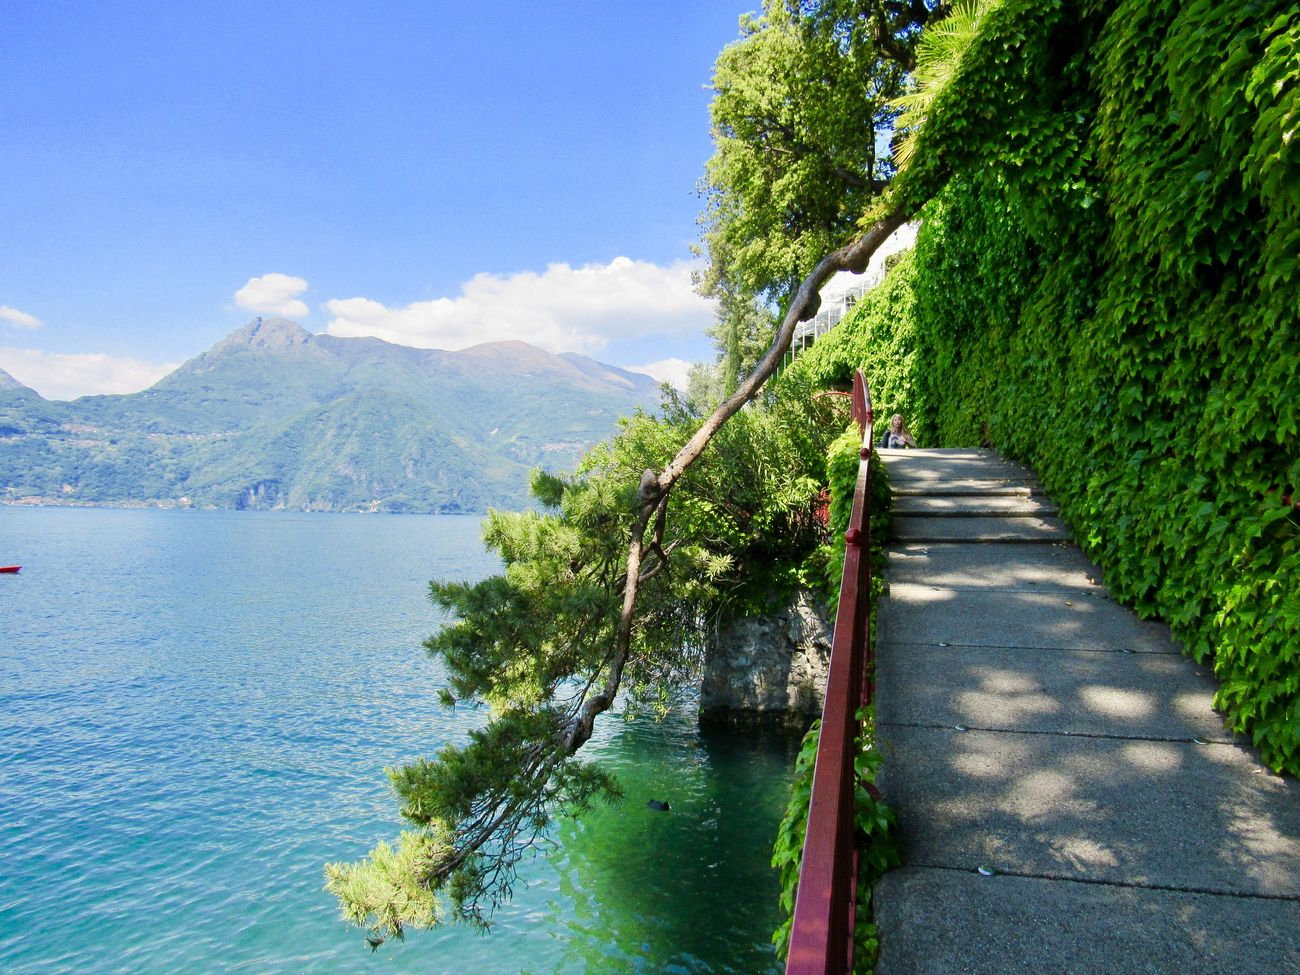 Beauty In Nature Blue Day Mountain Nature Sky Tranquil Scene Tranquility Tree Varennaitaly Water